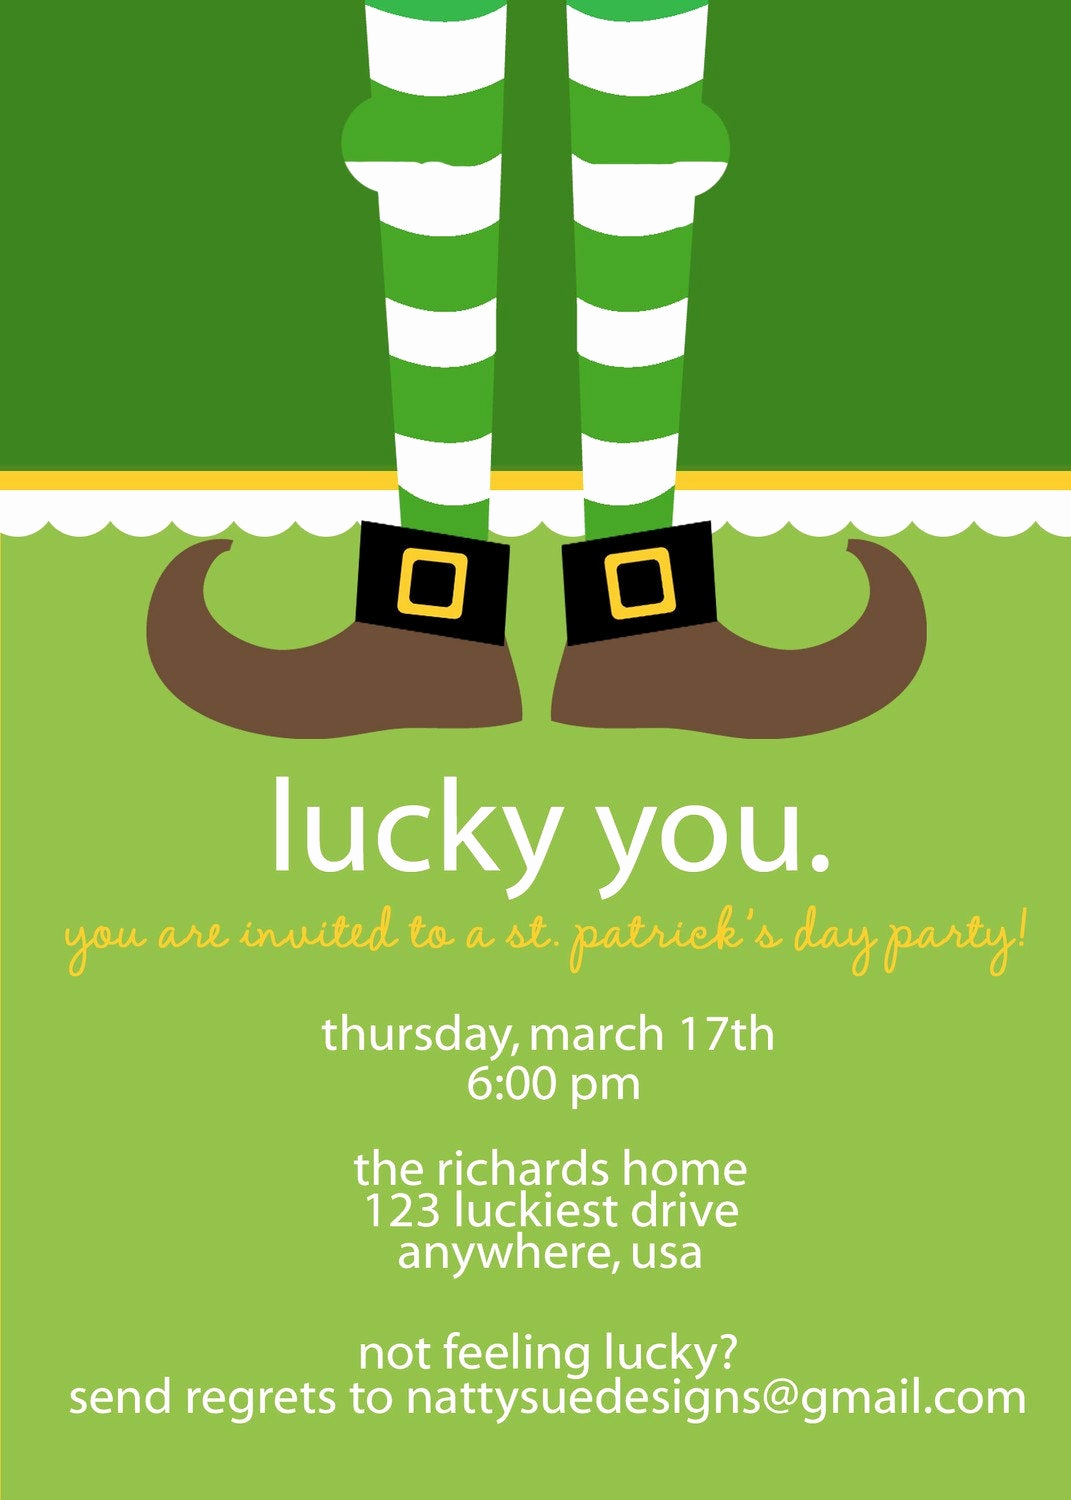 St Patrick Day Invitation Unique Lucky St Patrick S Day Party Invitation by Nattysuedesigns1